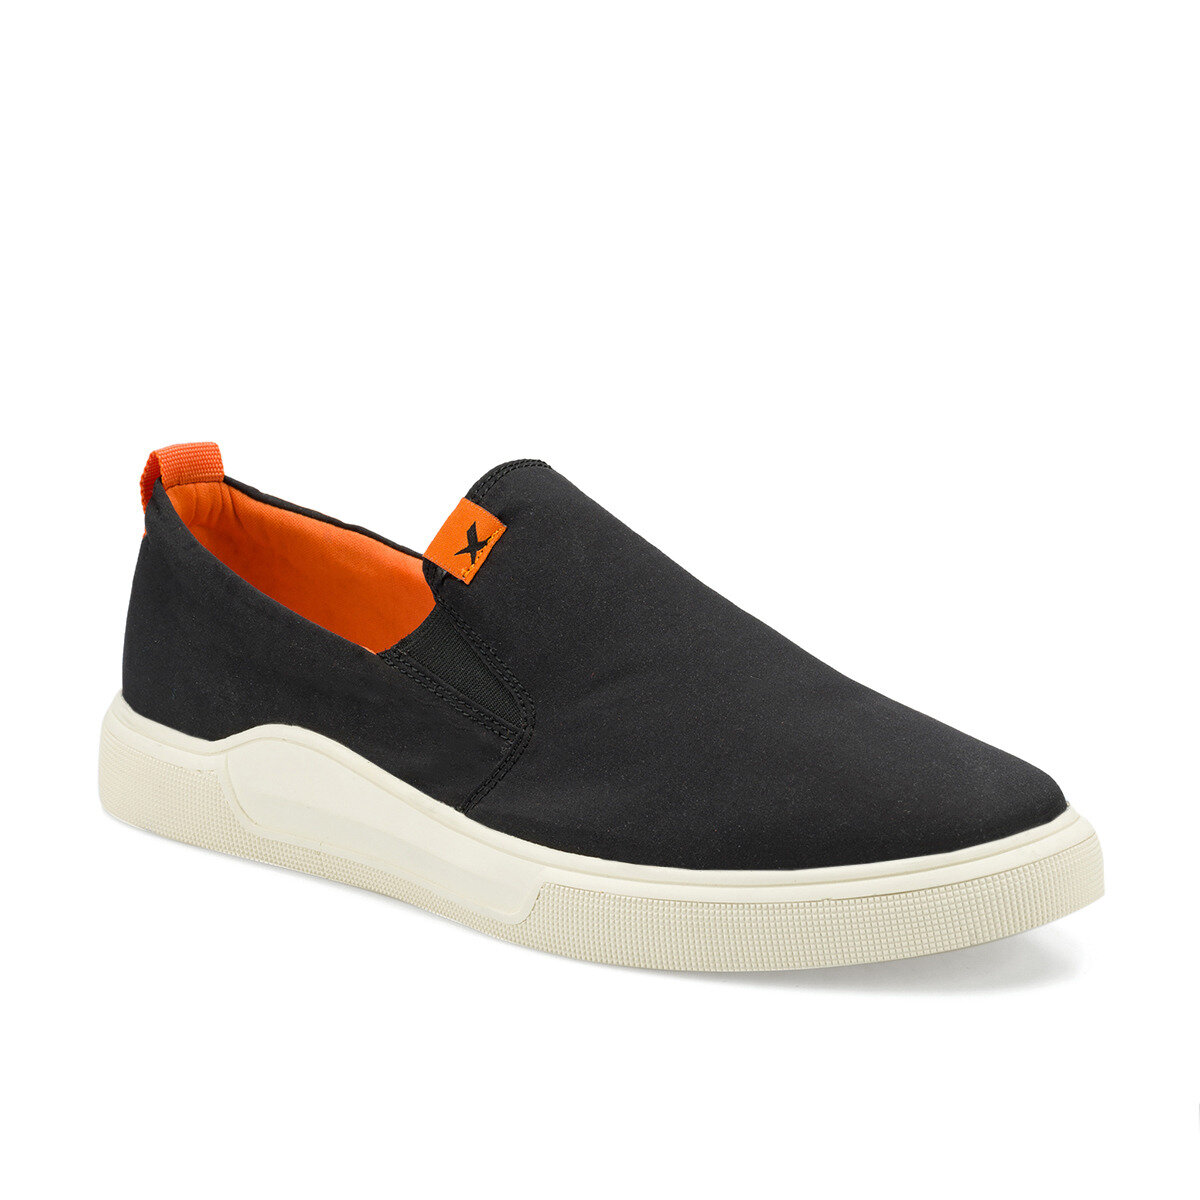 FLO MERDA Black Slip On Shoes KINETIX